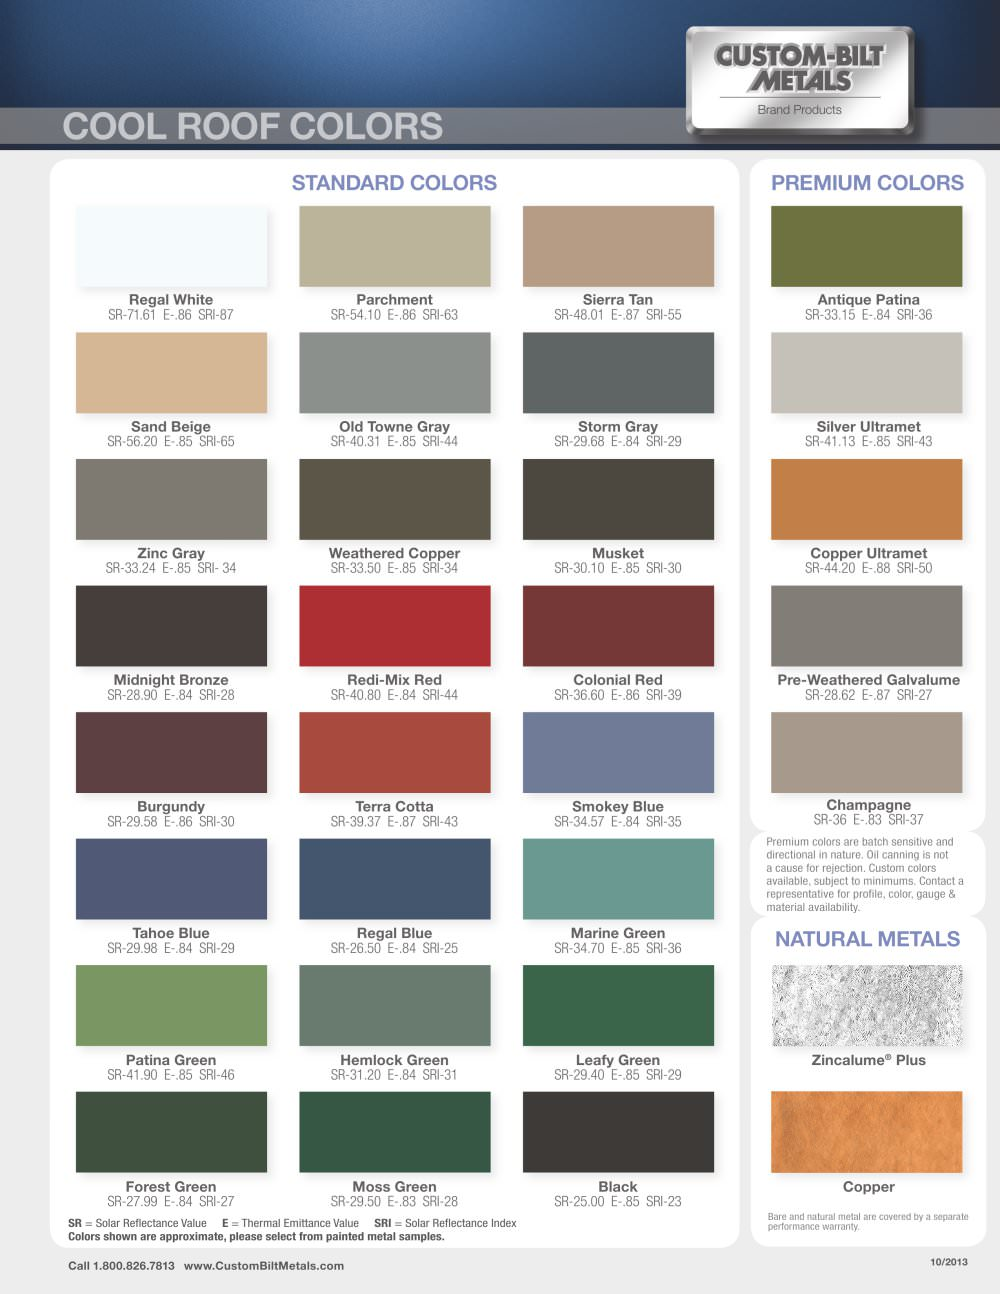 Standing Seam Roofing Color Chart - 1 / 2 Pages